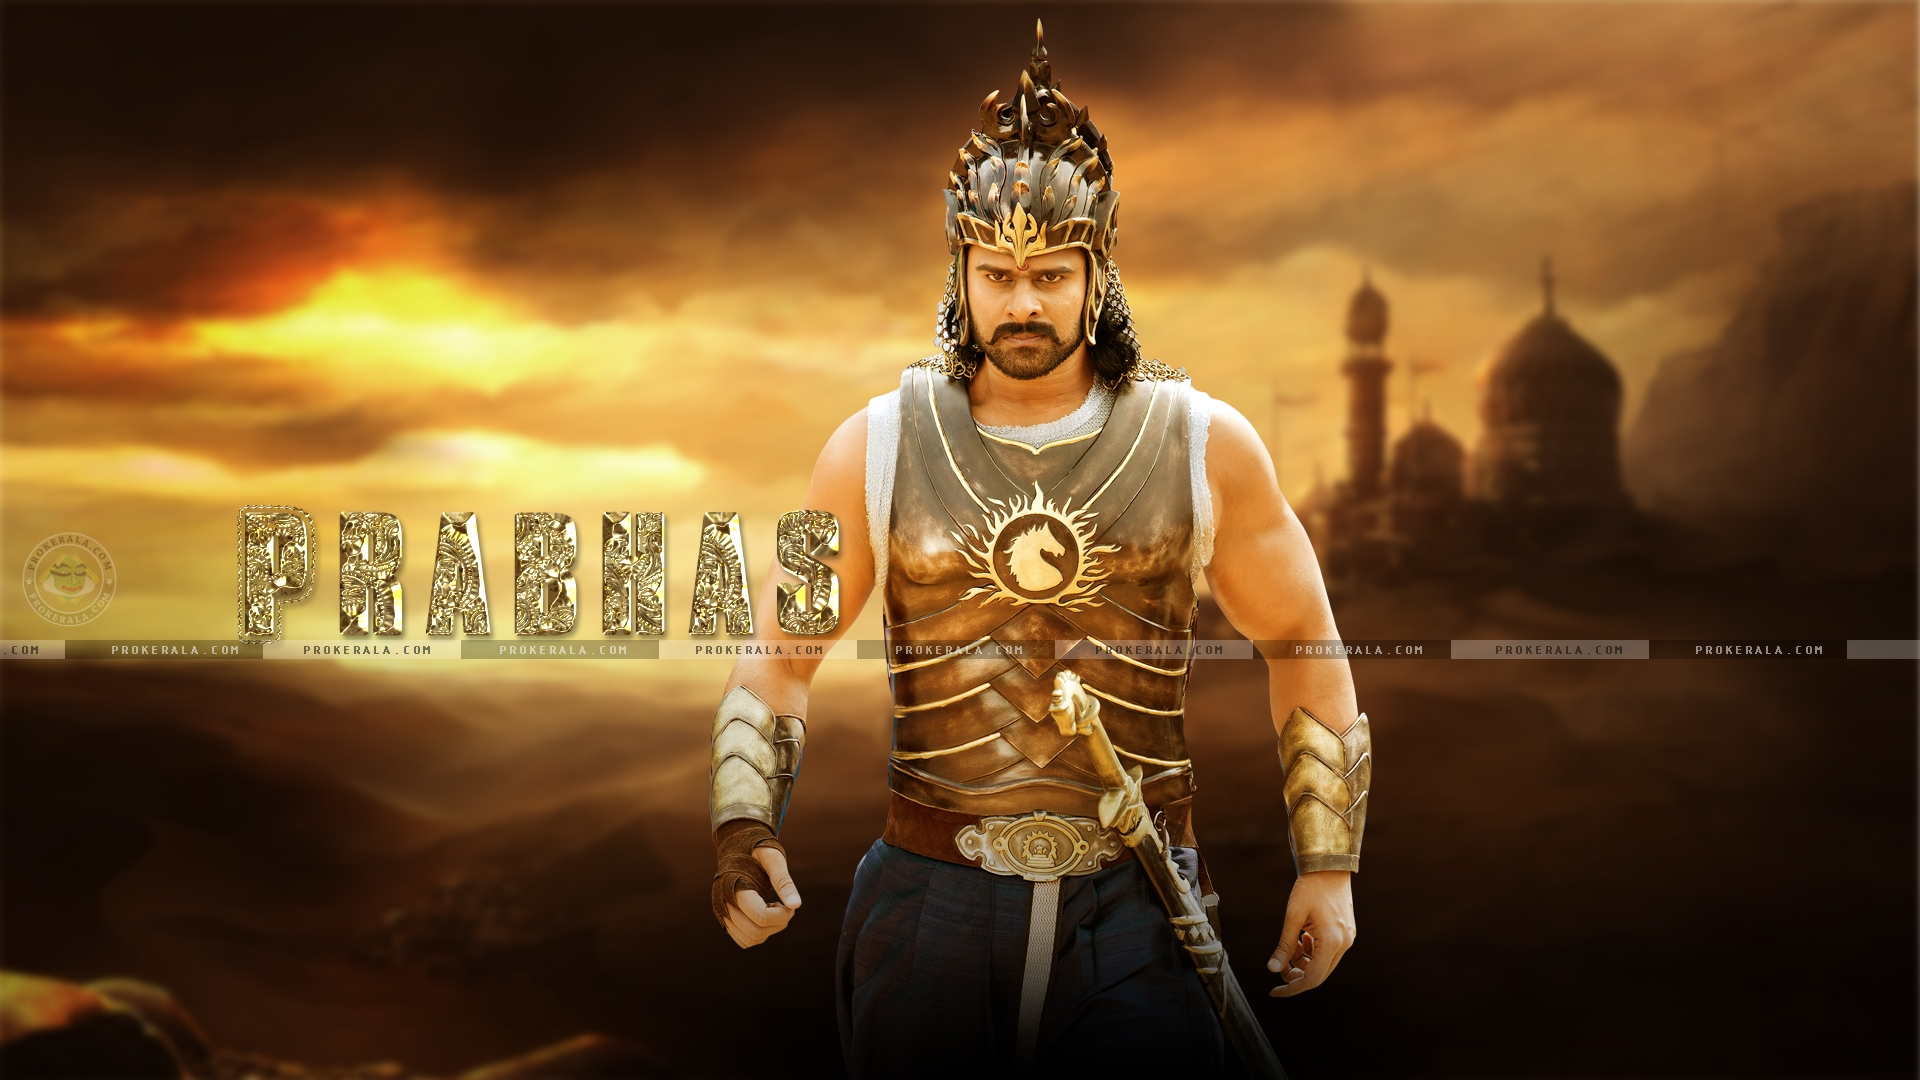 Wallpaper download bahubali - Download Wallpaper